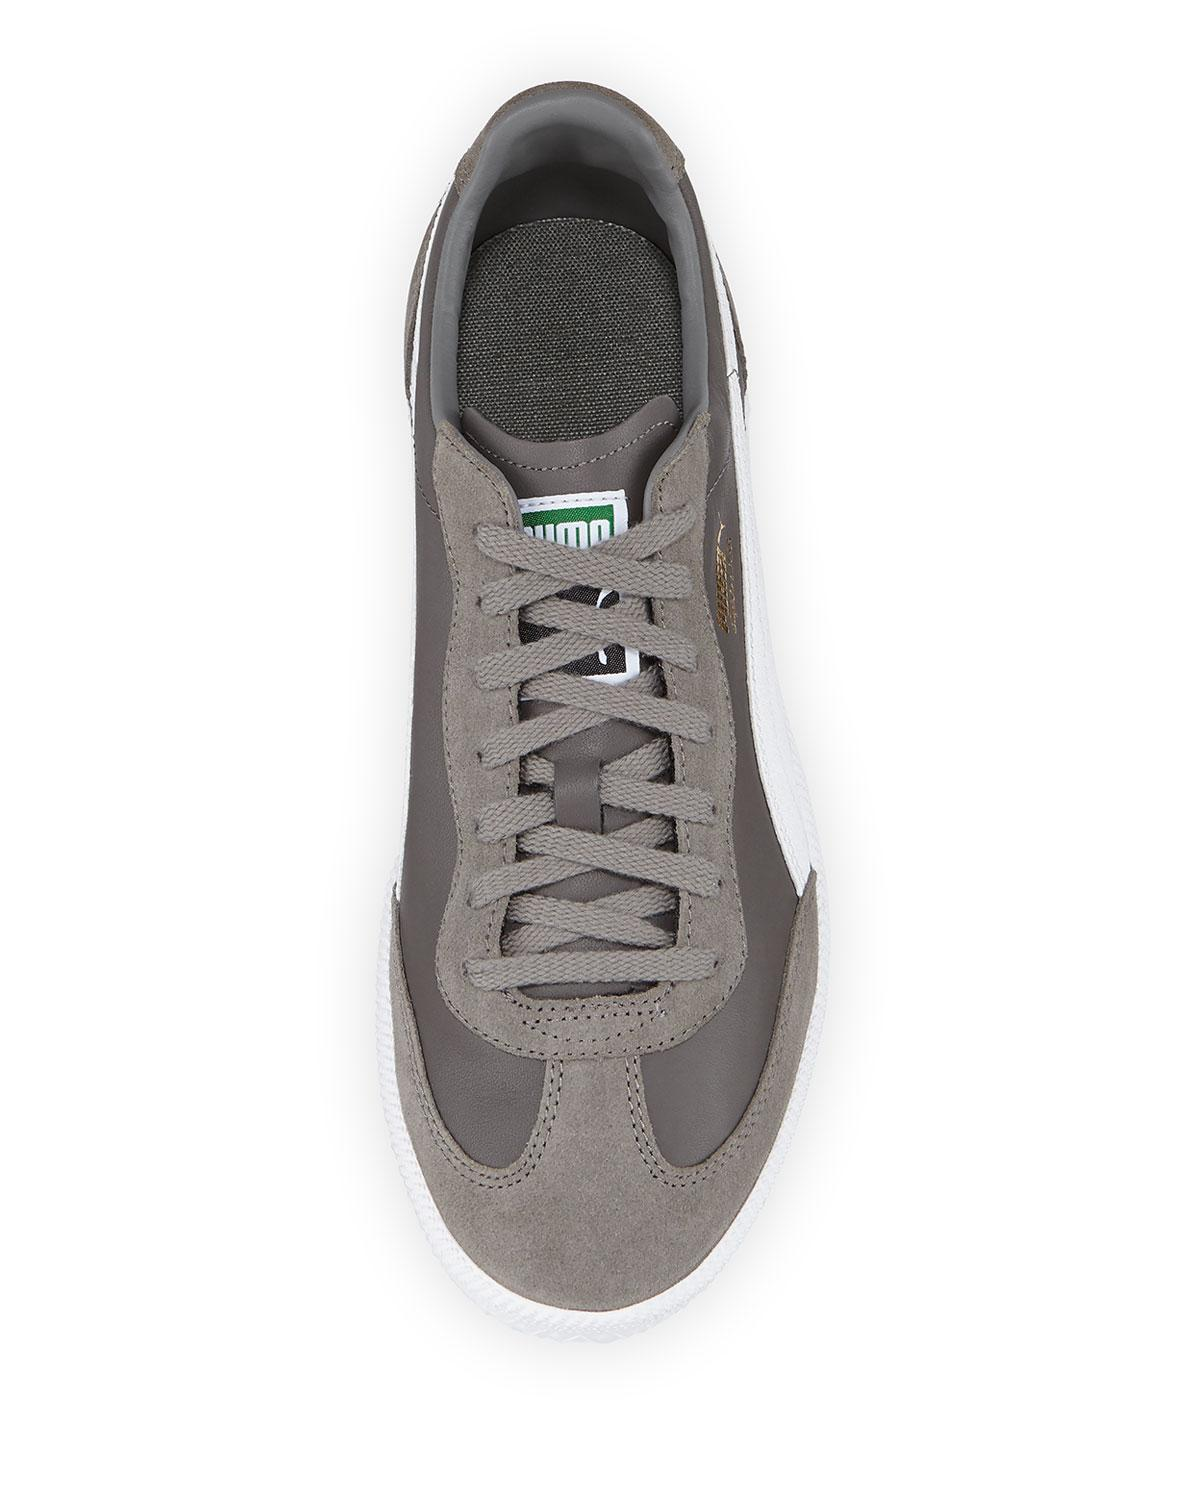 e3d200c74ec Lyst - PUMA Steel Grey Super Liga Og Retro Low-top Sneakers in Gray for Men  - Save 11%